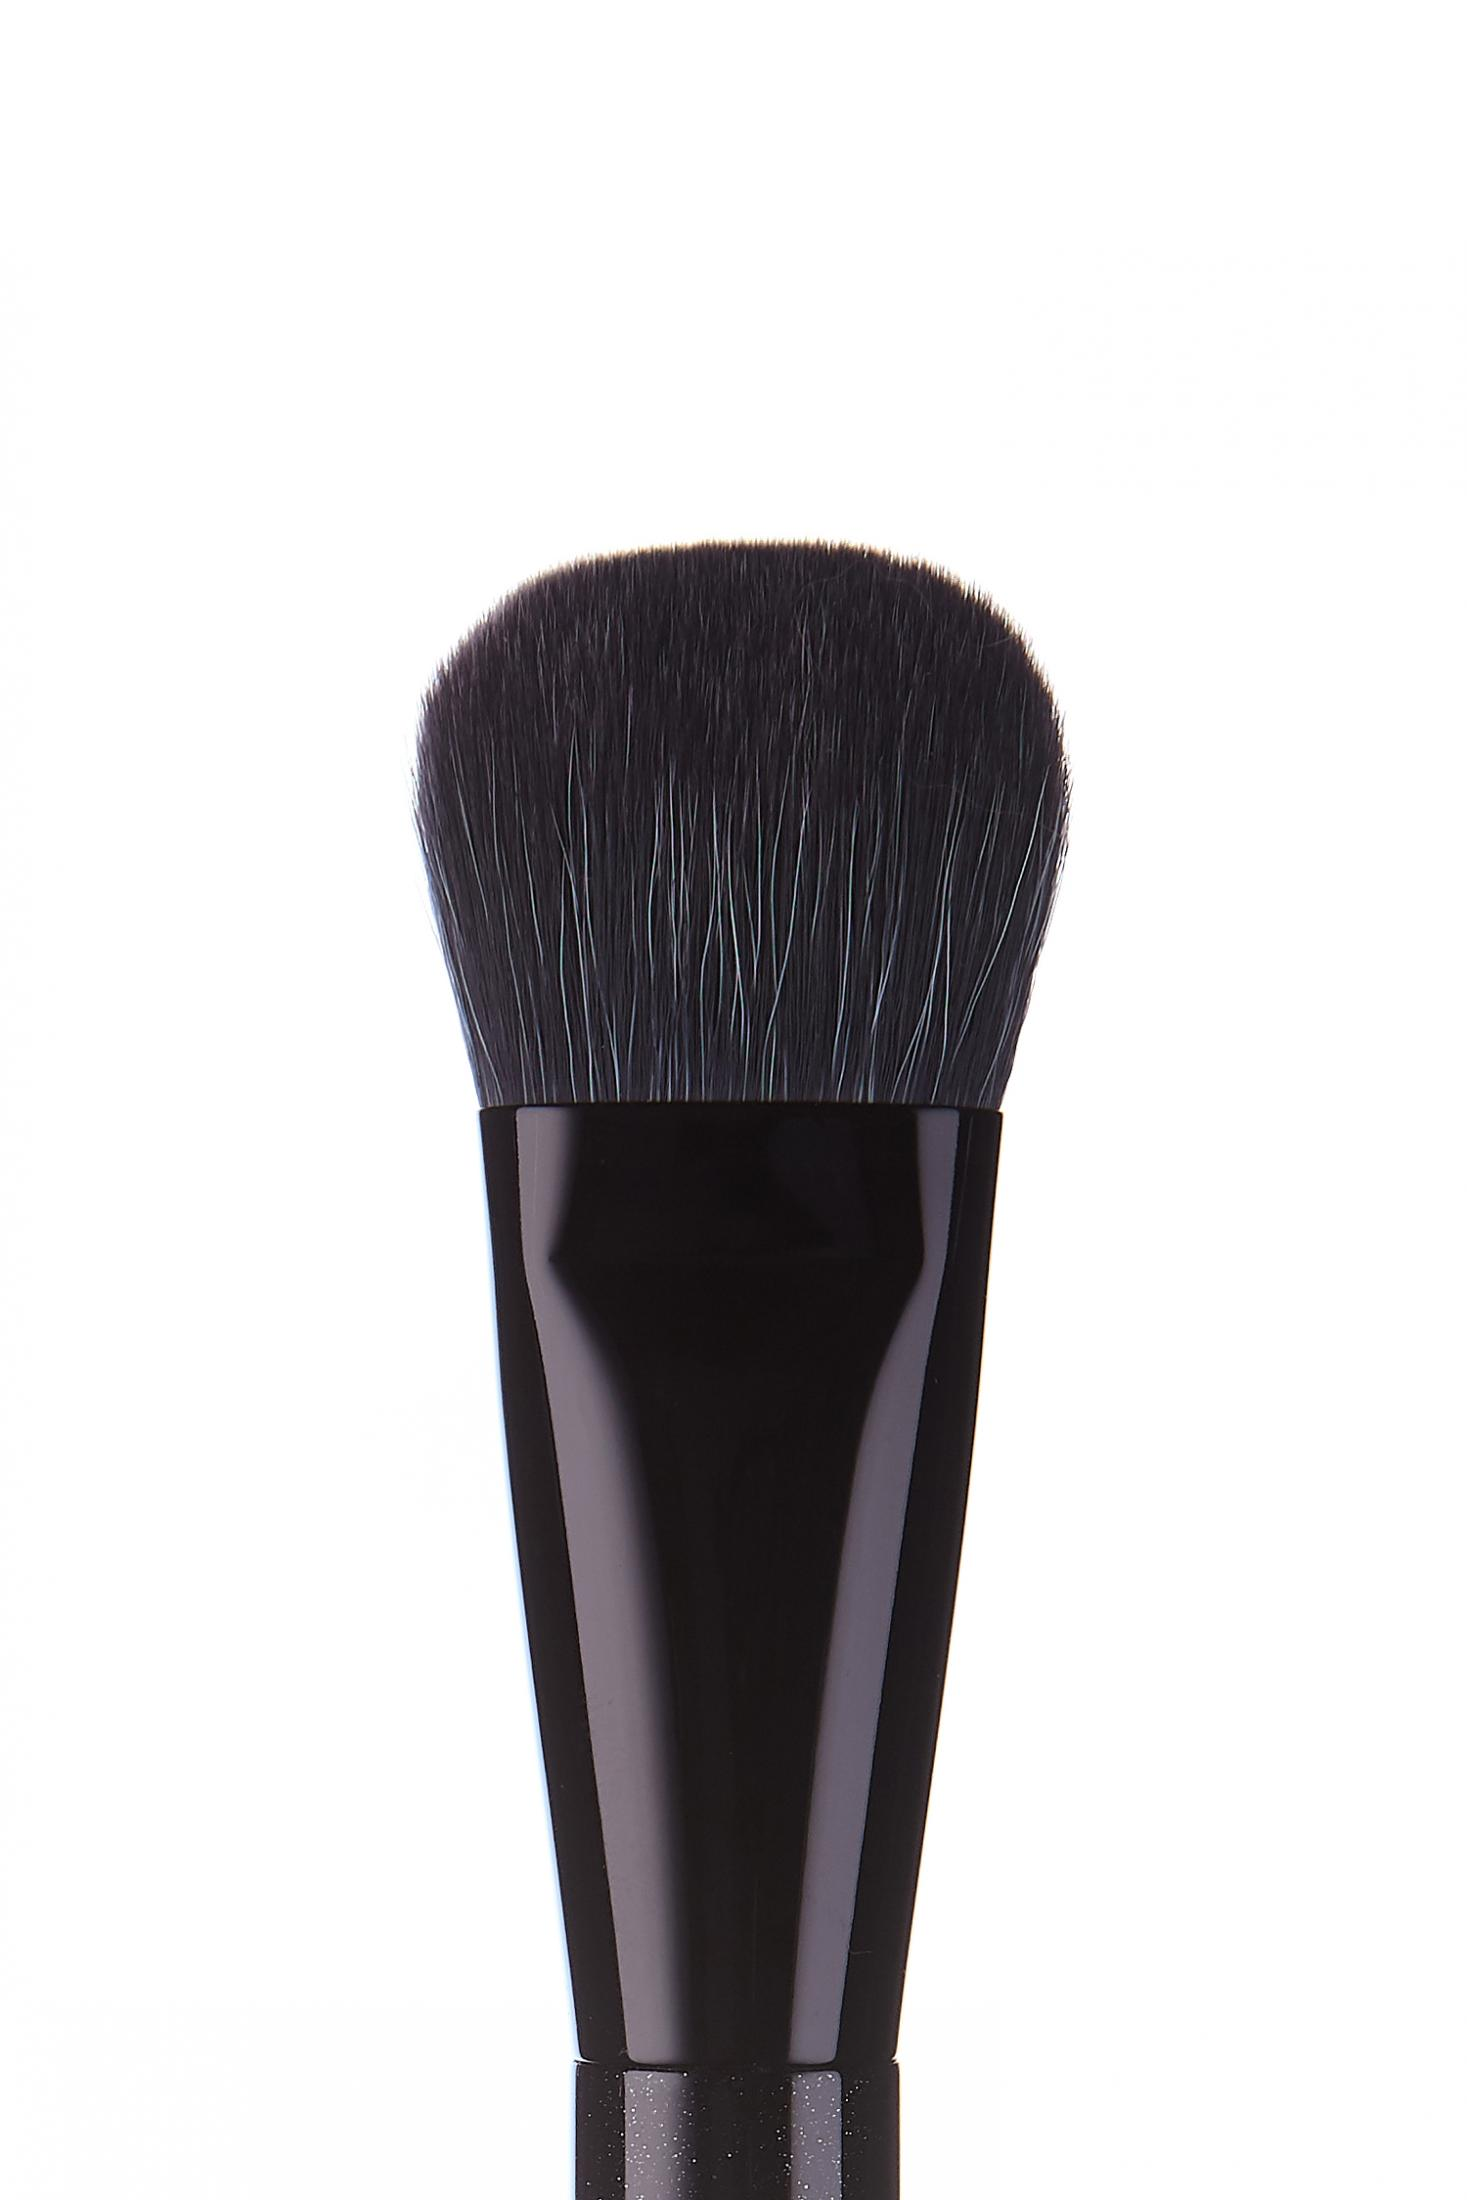 Annbeauty T1 foundation brush hair - Limited Edition